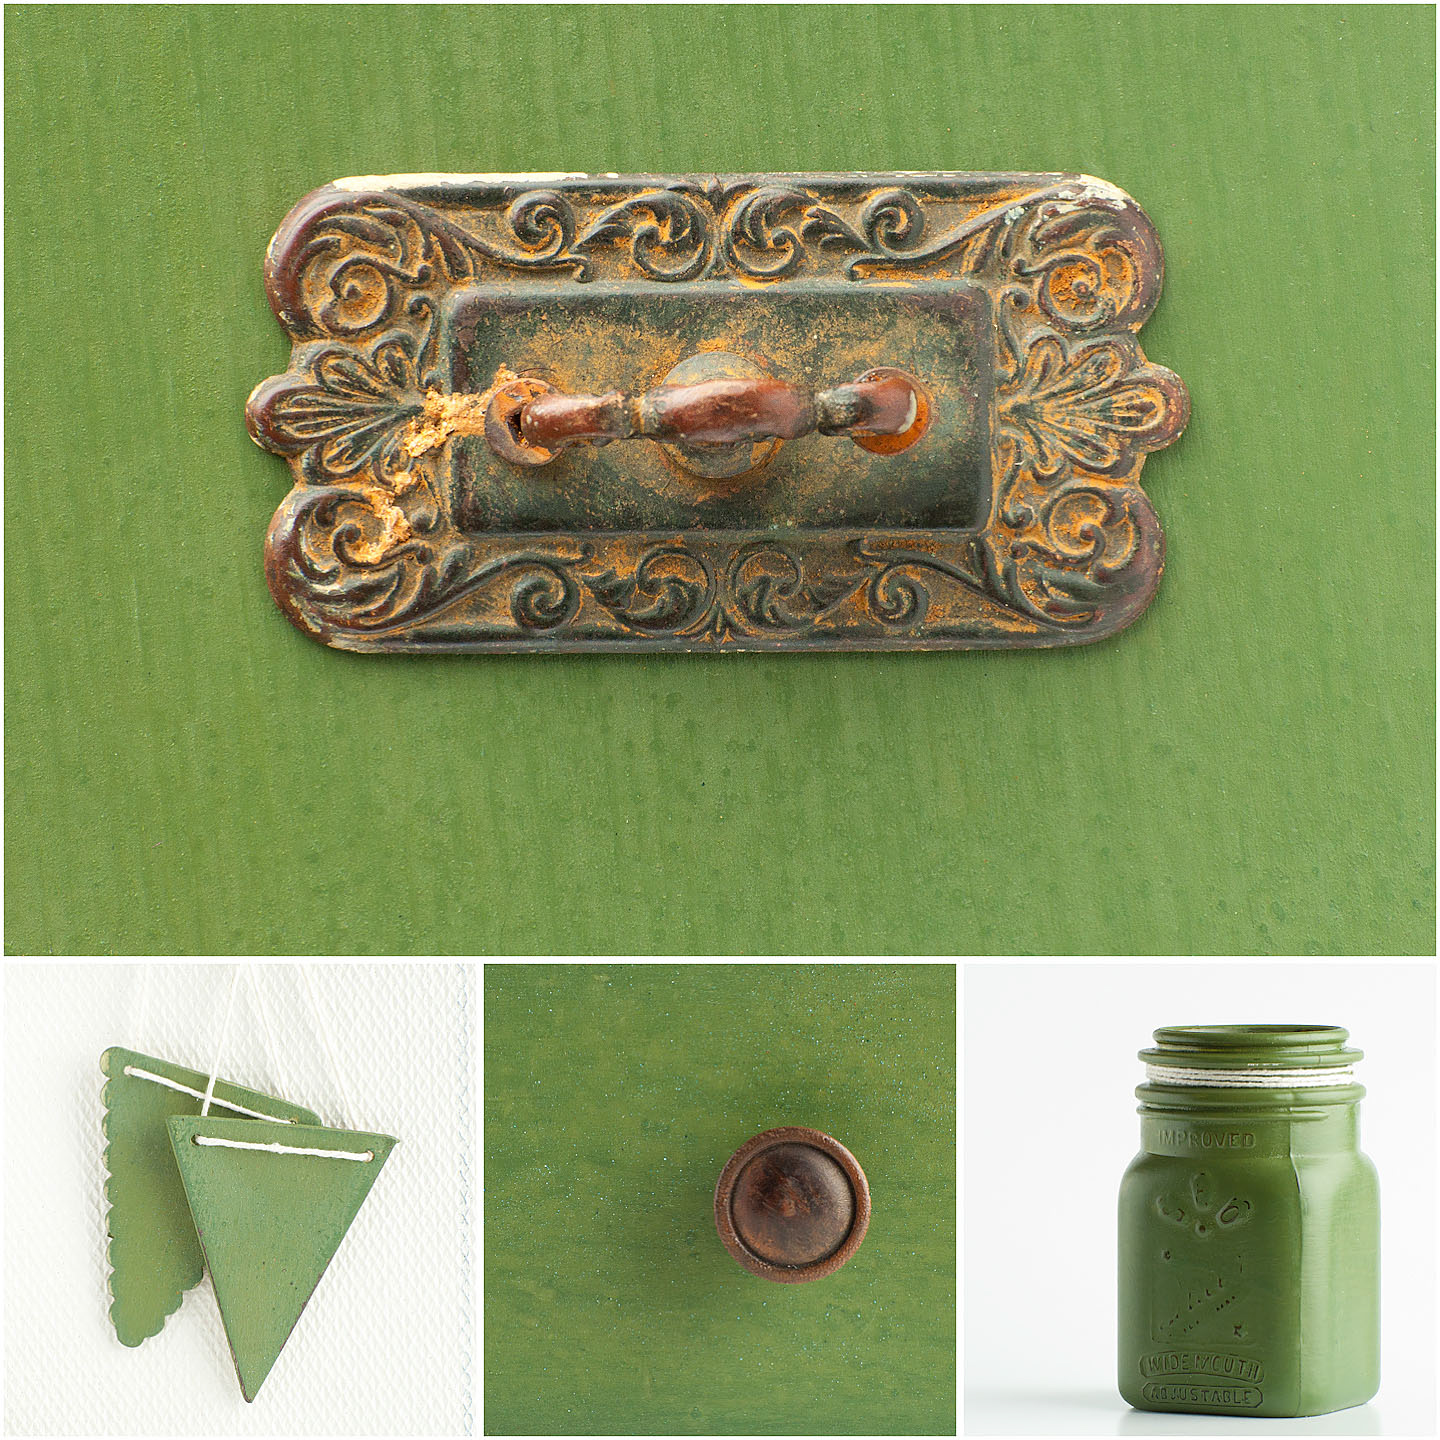 Boxwood is our rich, dark grassy green. Depending on the finish used on the piece, it can look bright and bold or subtle – more like a muted olive. Boxwood is named for the preserved boxwood wreaths and topiaries Marian uses in her interiors.  Boxwood mixes well with Grain Sack to create a pale aqua. Layer under Lucketts Green for a two-toned, monochromatic look.